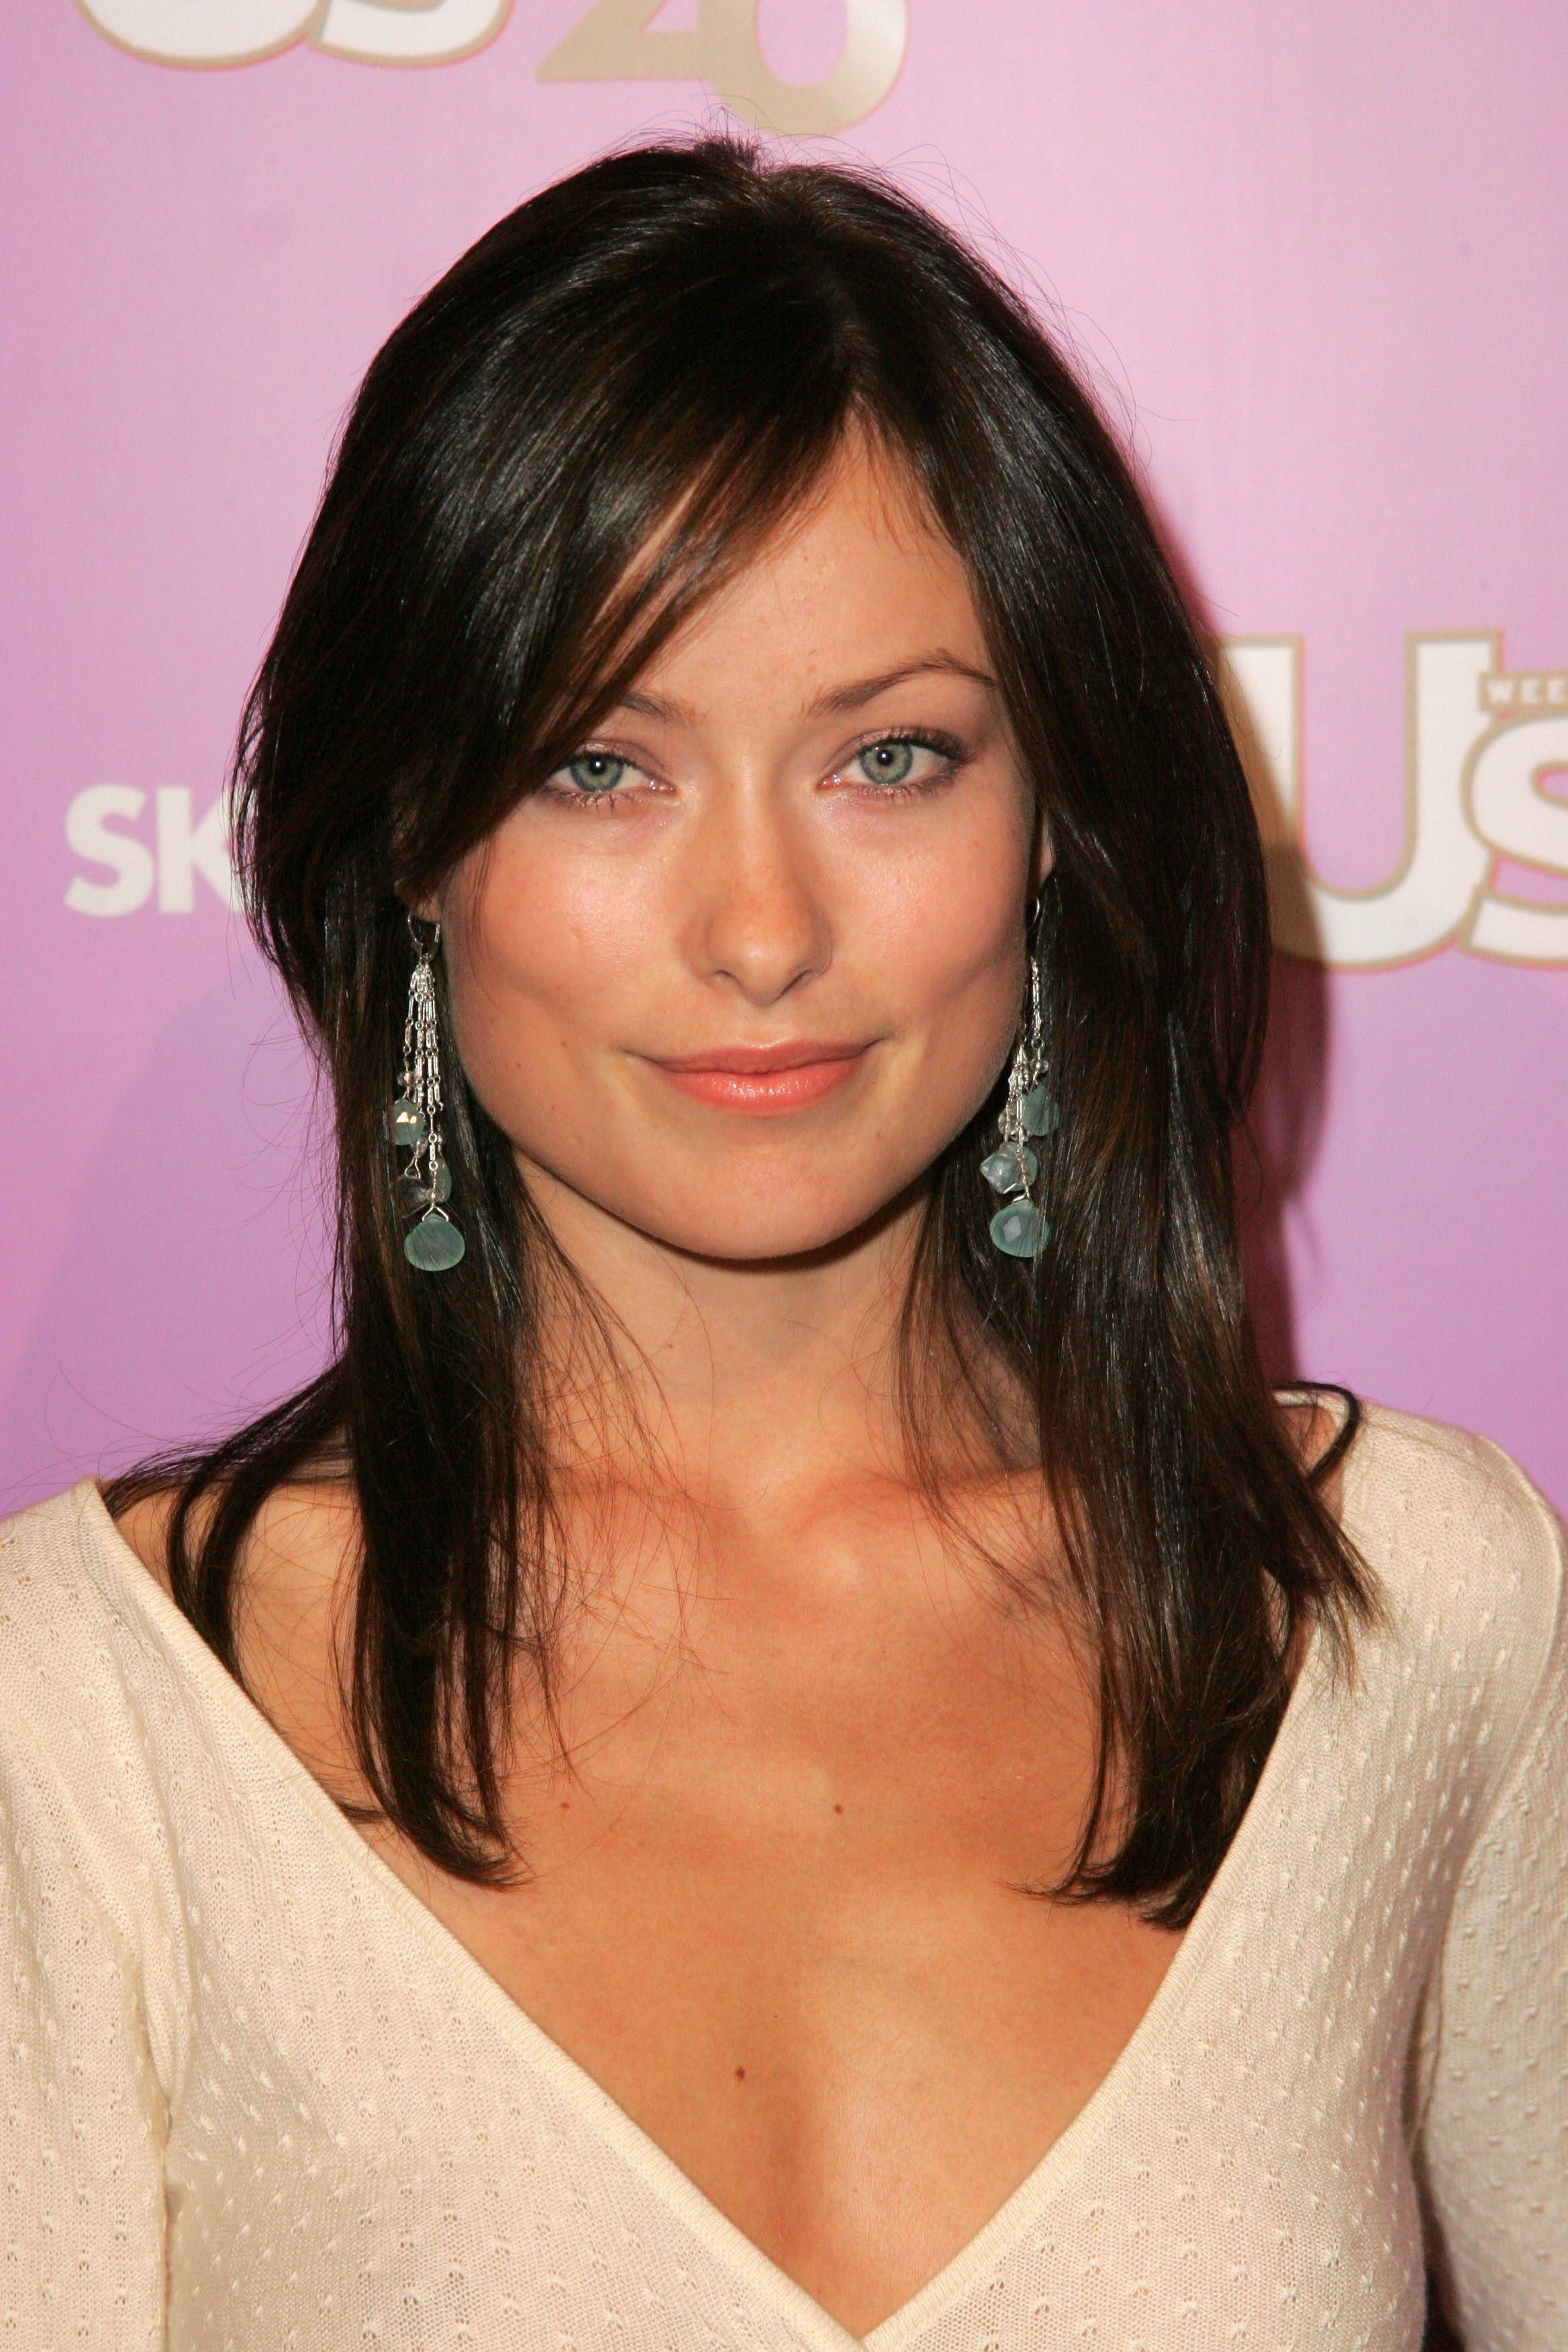 Female Celebrities With Light Brown Hair throughout ☼ olivia wilde #celebrities   olivia wilde   pinterest   olivia